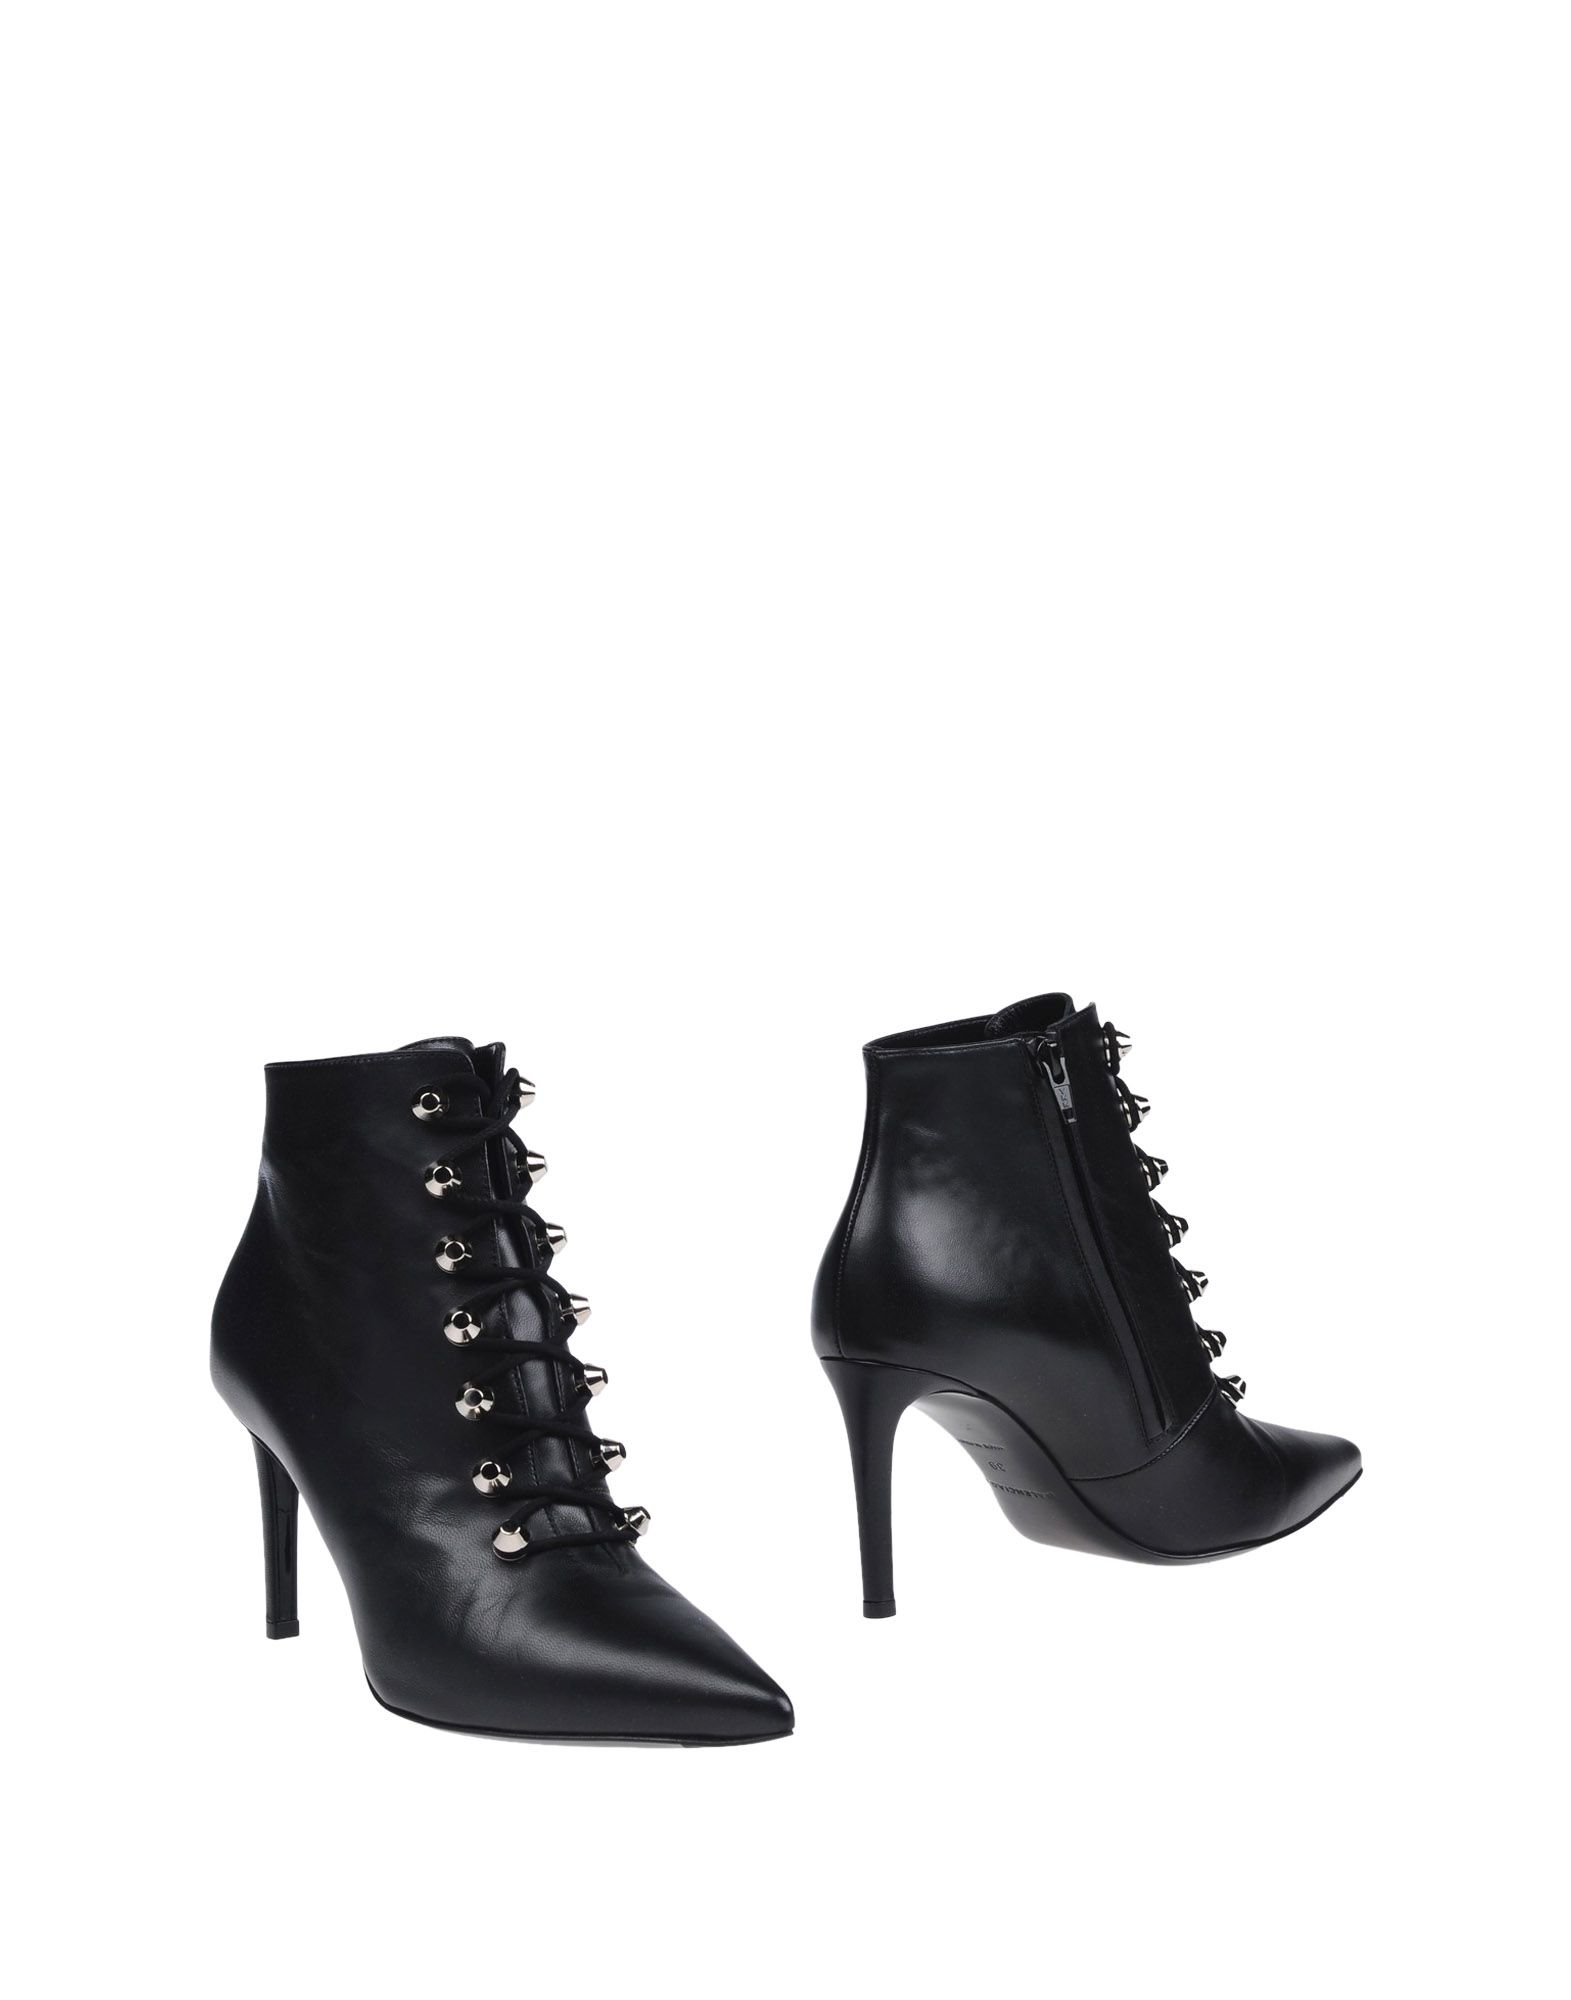 Bottine Balenciaga Femme - Bottines Balenciaga sur